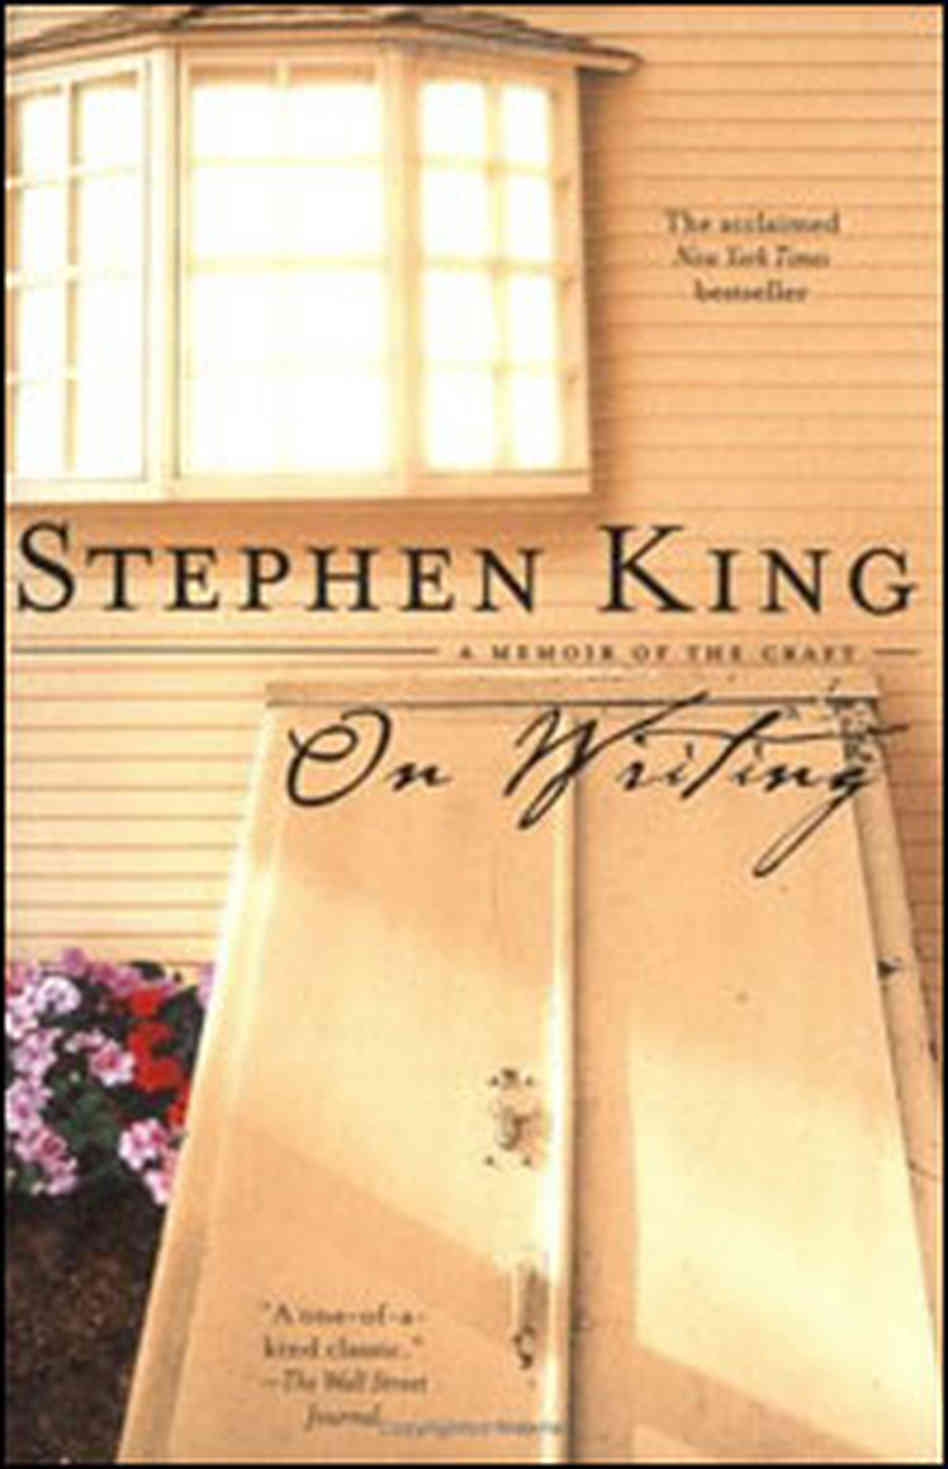 lilja u0026 39 s library - the world of stephen king  1996